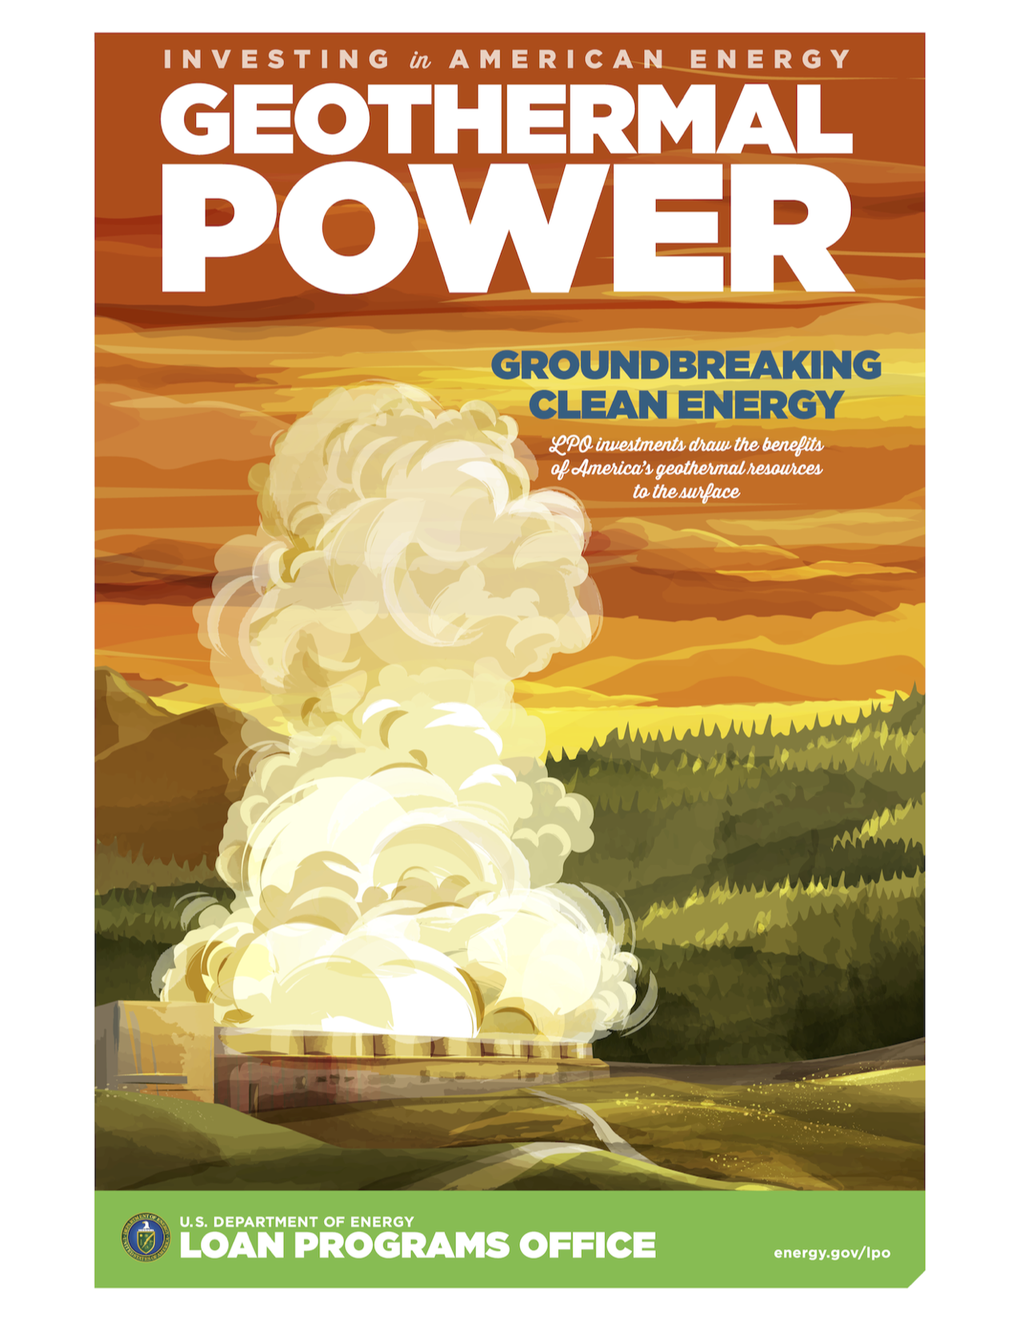 The Department Of Energy Promotes Clean Energy With Funky Retro Posters Geothermal Energy Retro Poster New Poster